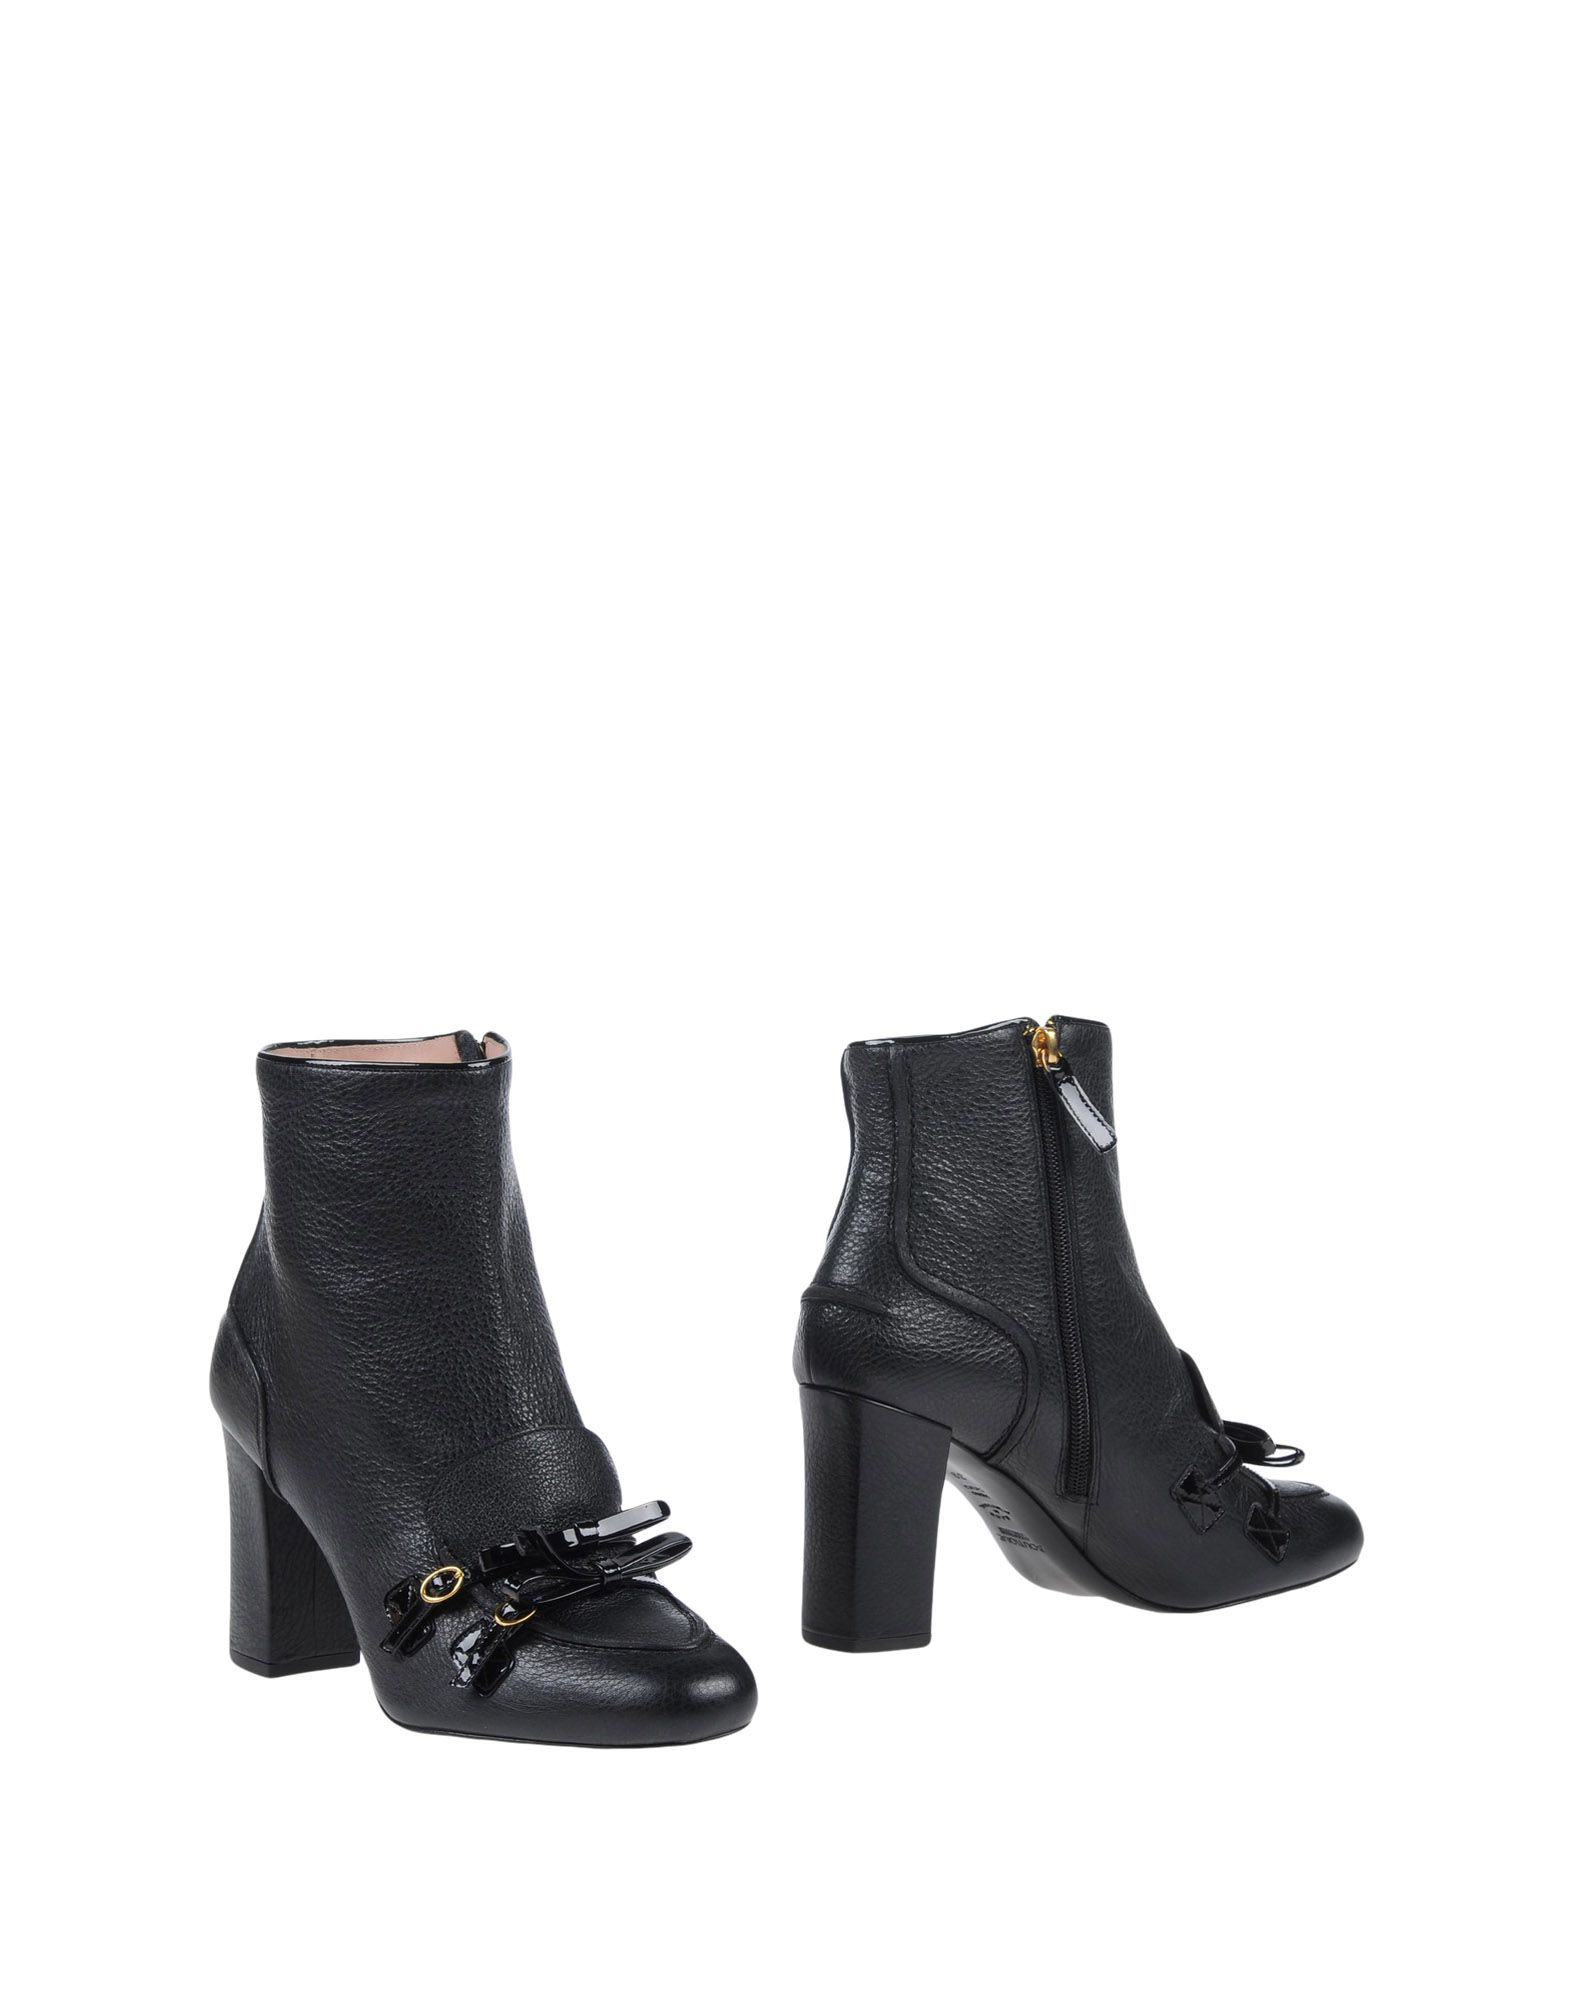 Bottine Boutique Moschino Femme - Bottines Boutique Moschino sur